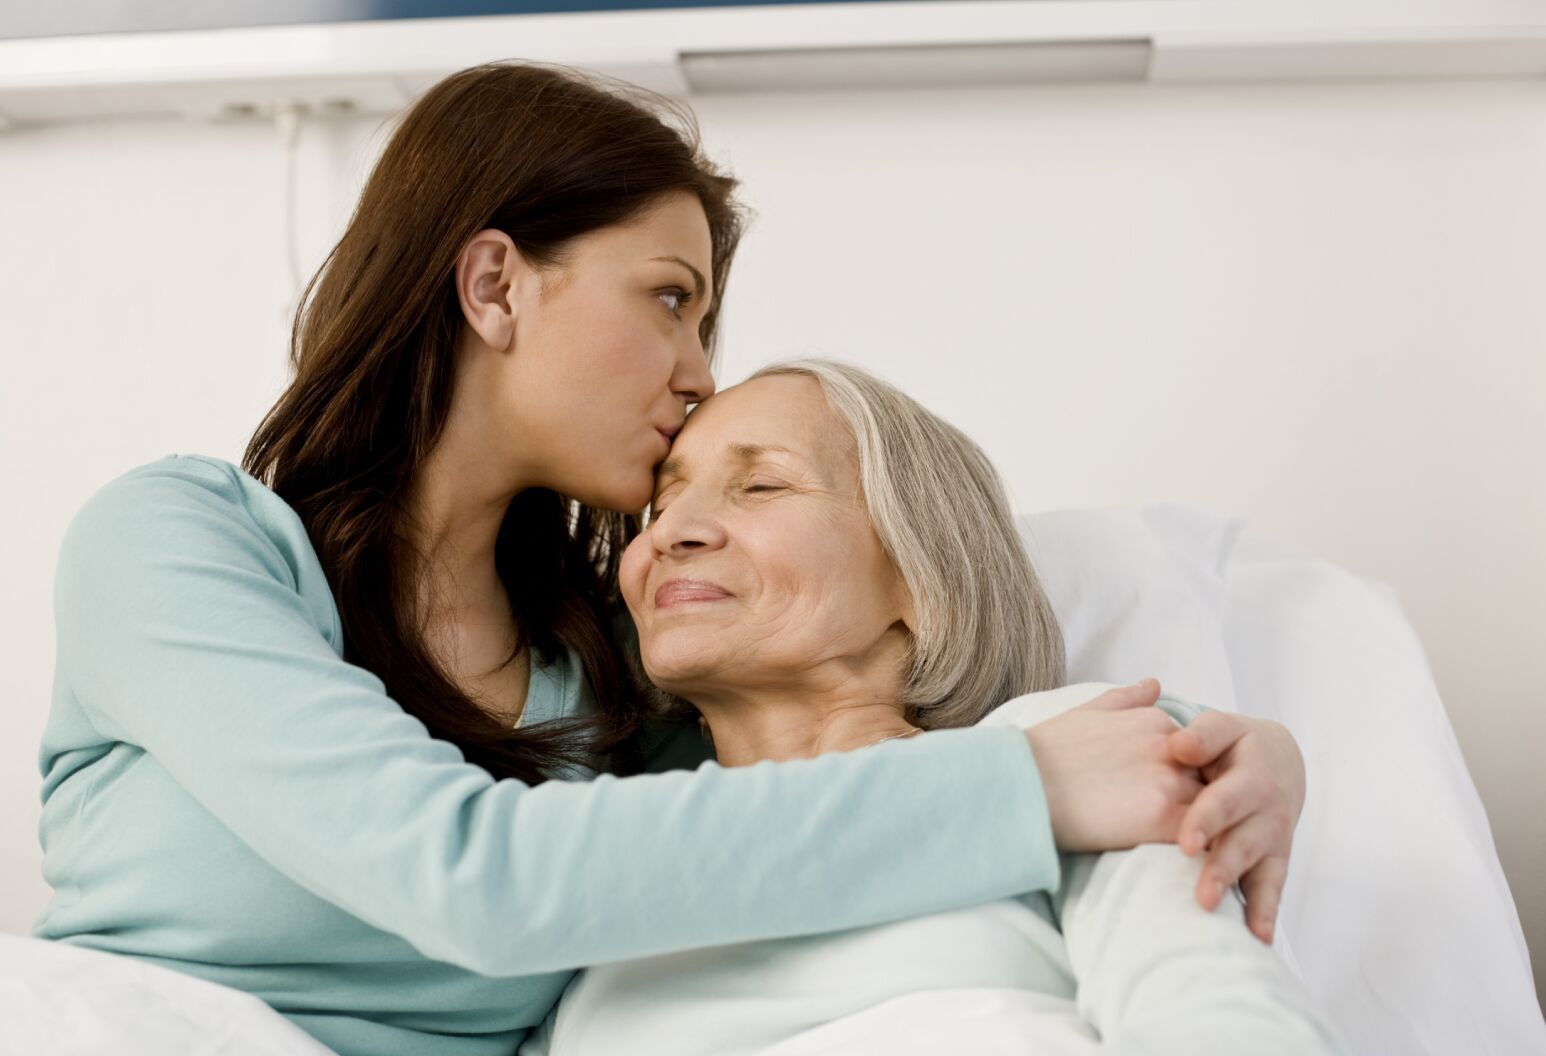 A young woman embracing an older woman who is lying in a hospital bed.